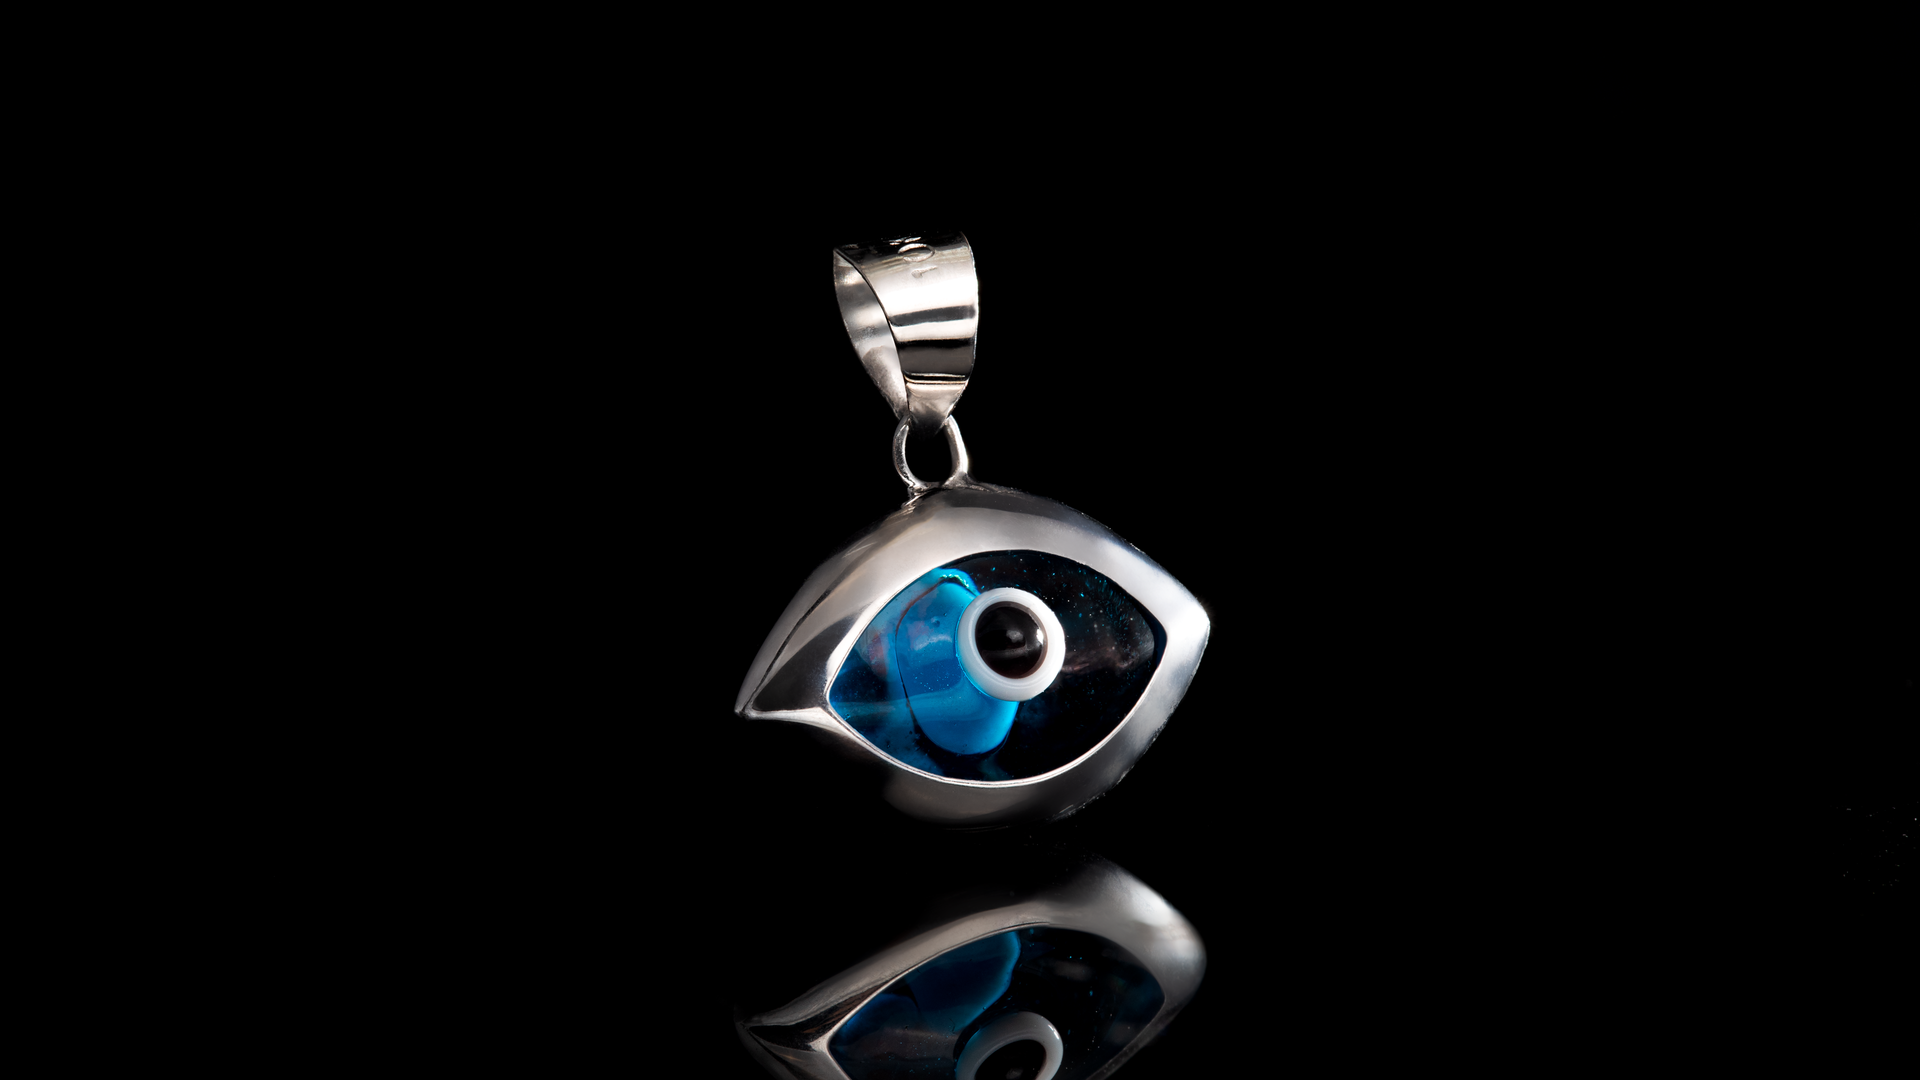 10K White Gold Eye Shaped Mini Charm Pendant